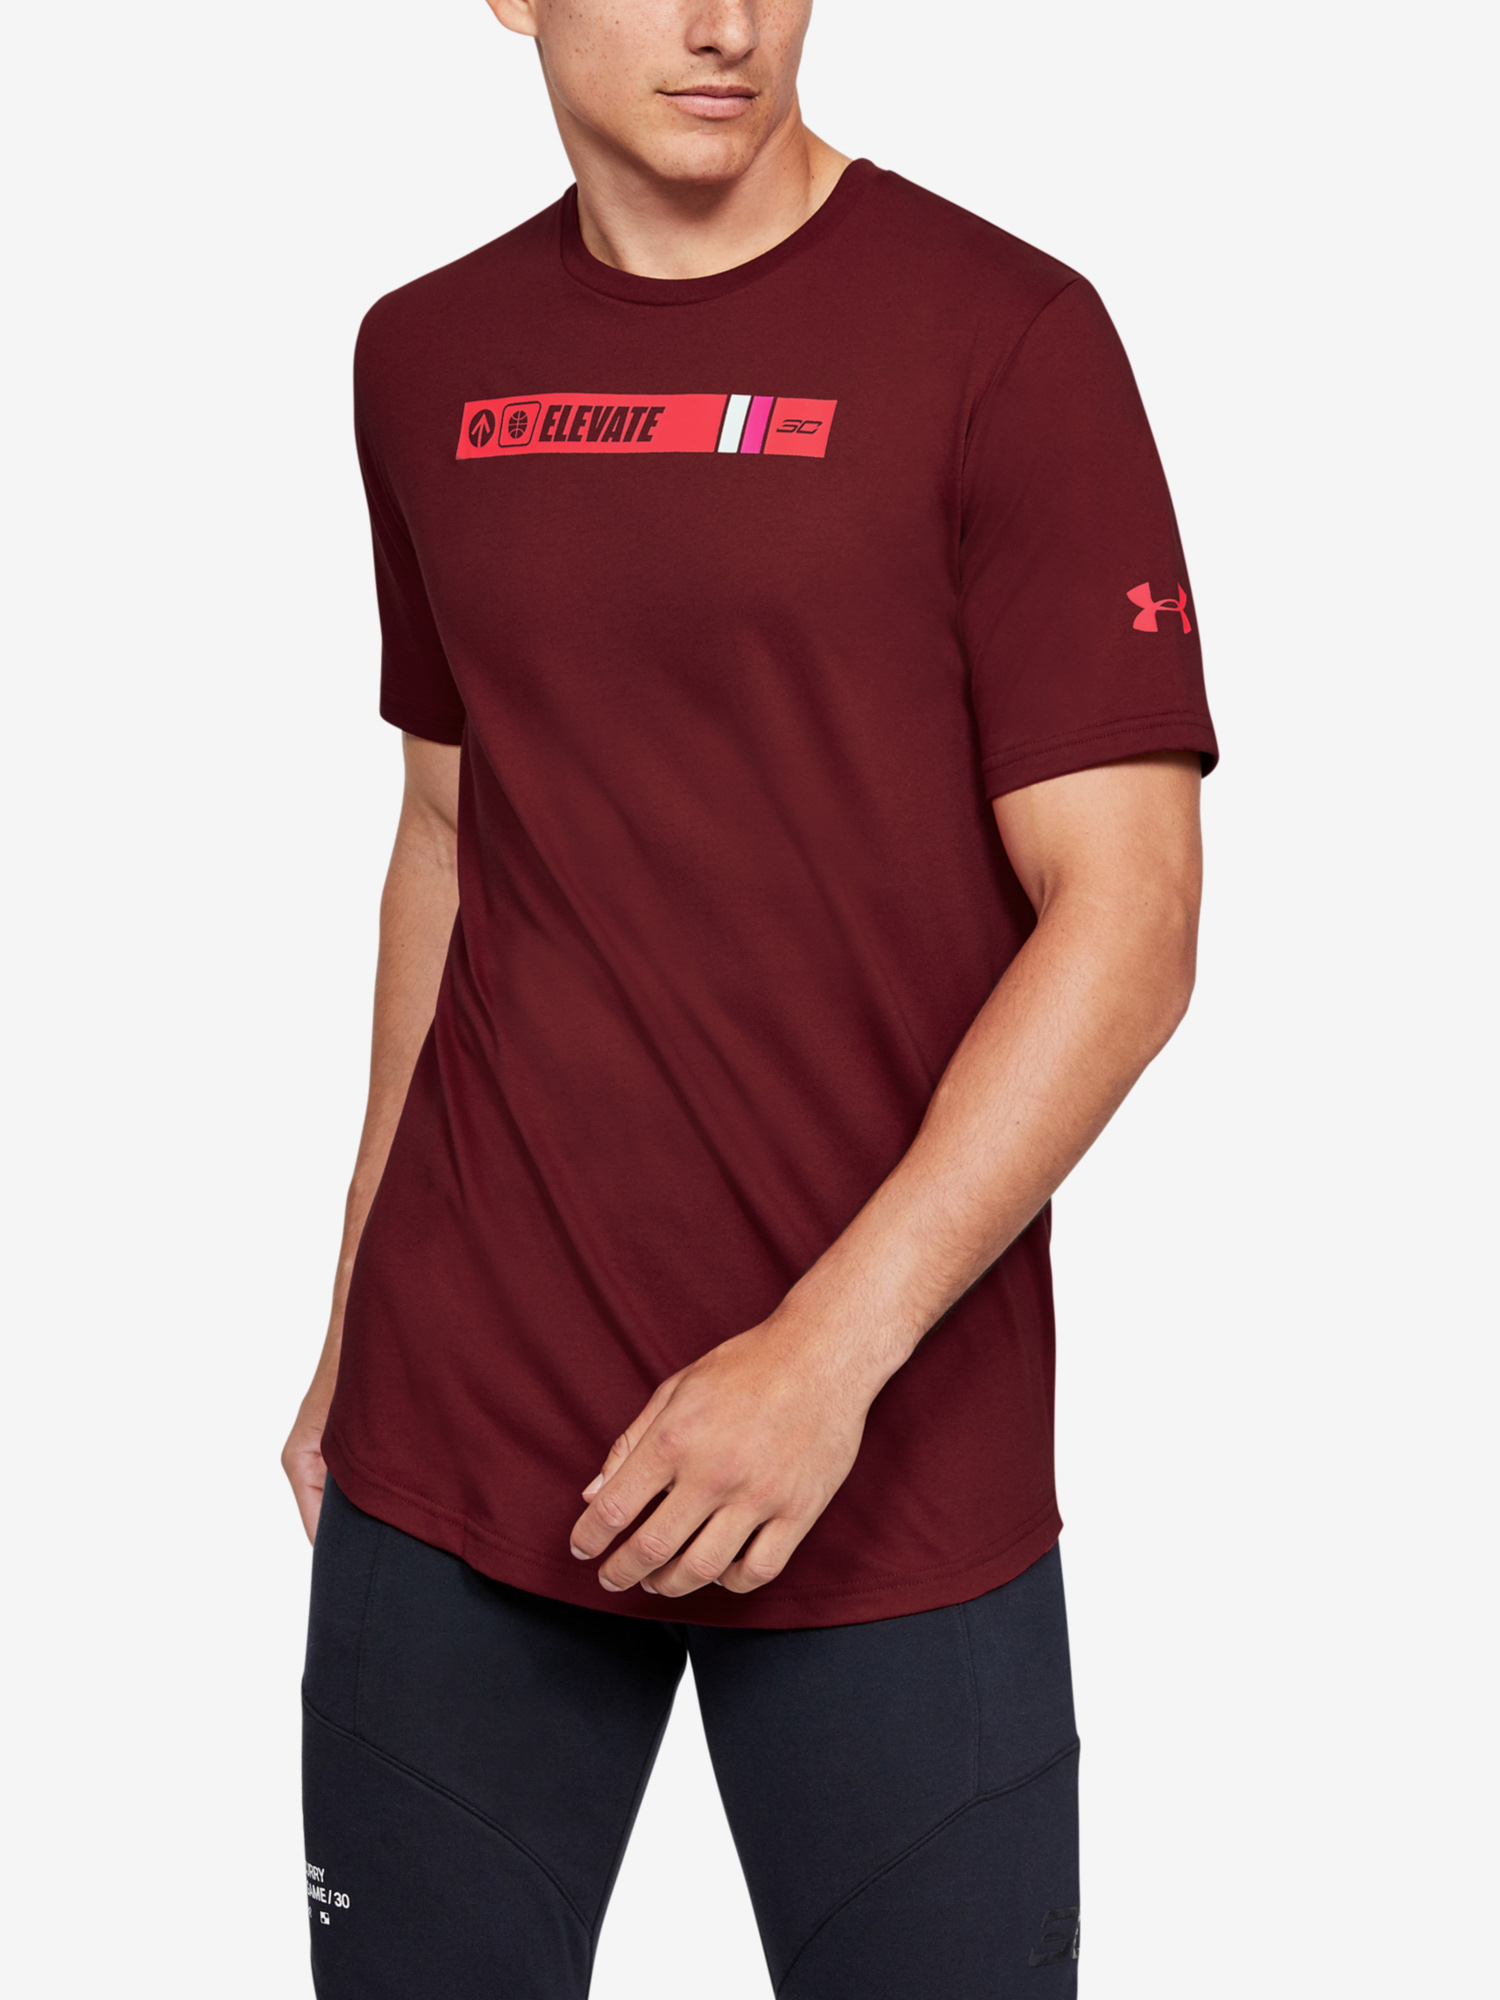 Tričko Under Armour Sc30 Ss Elevated Tee (1)